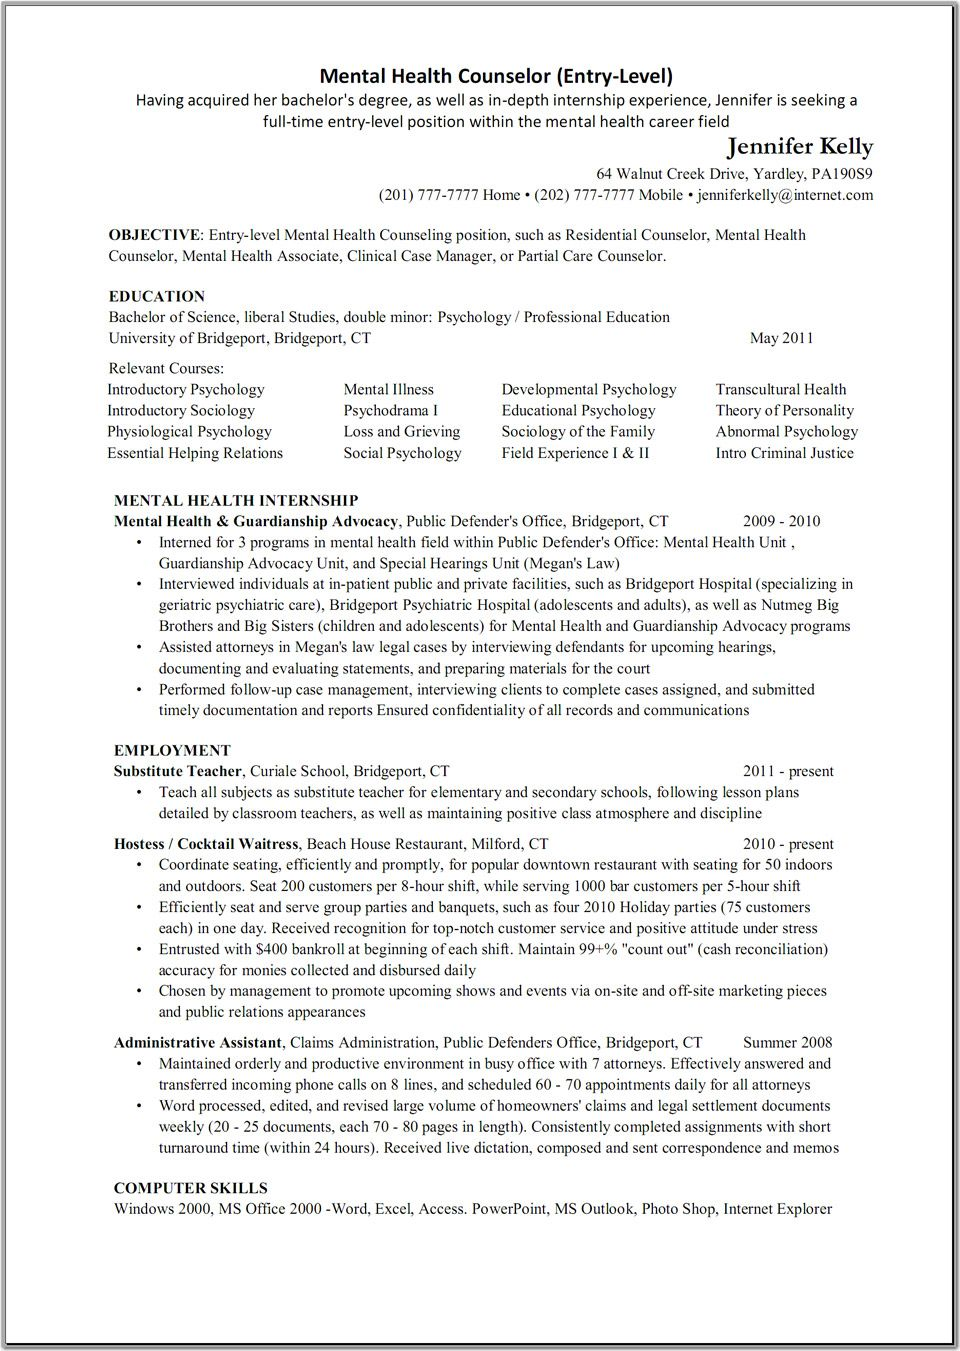 Mental Health Counselor Resume Objective | resume template ...